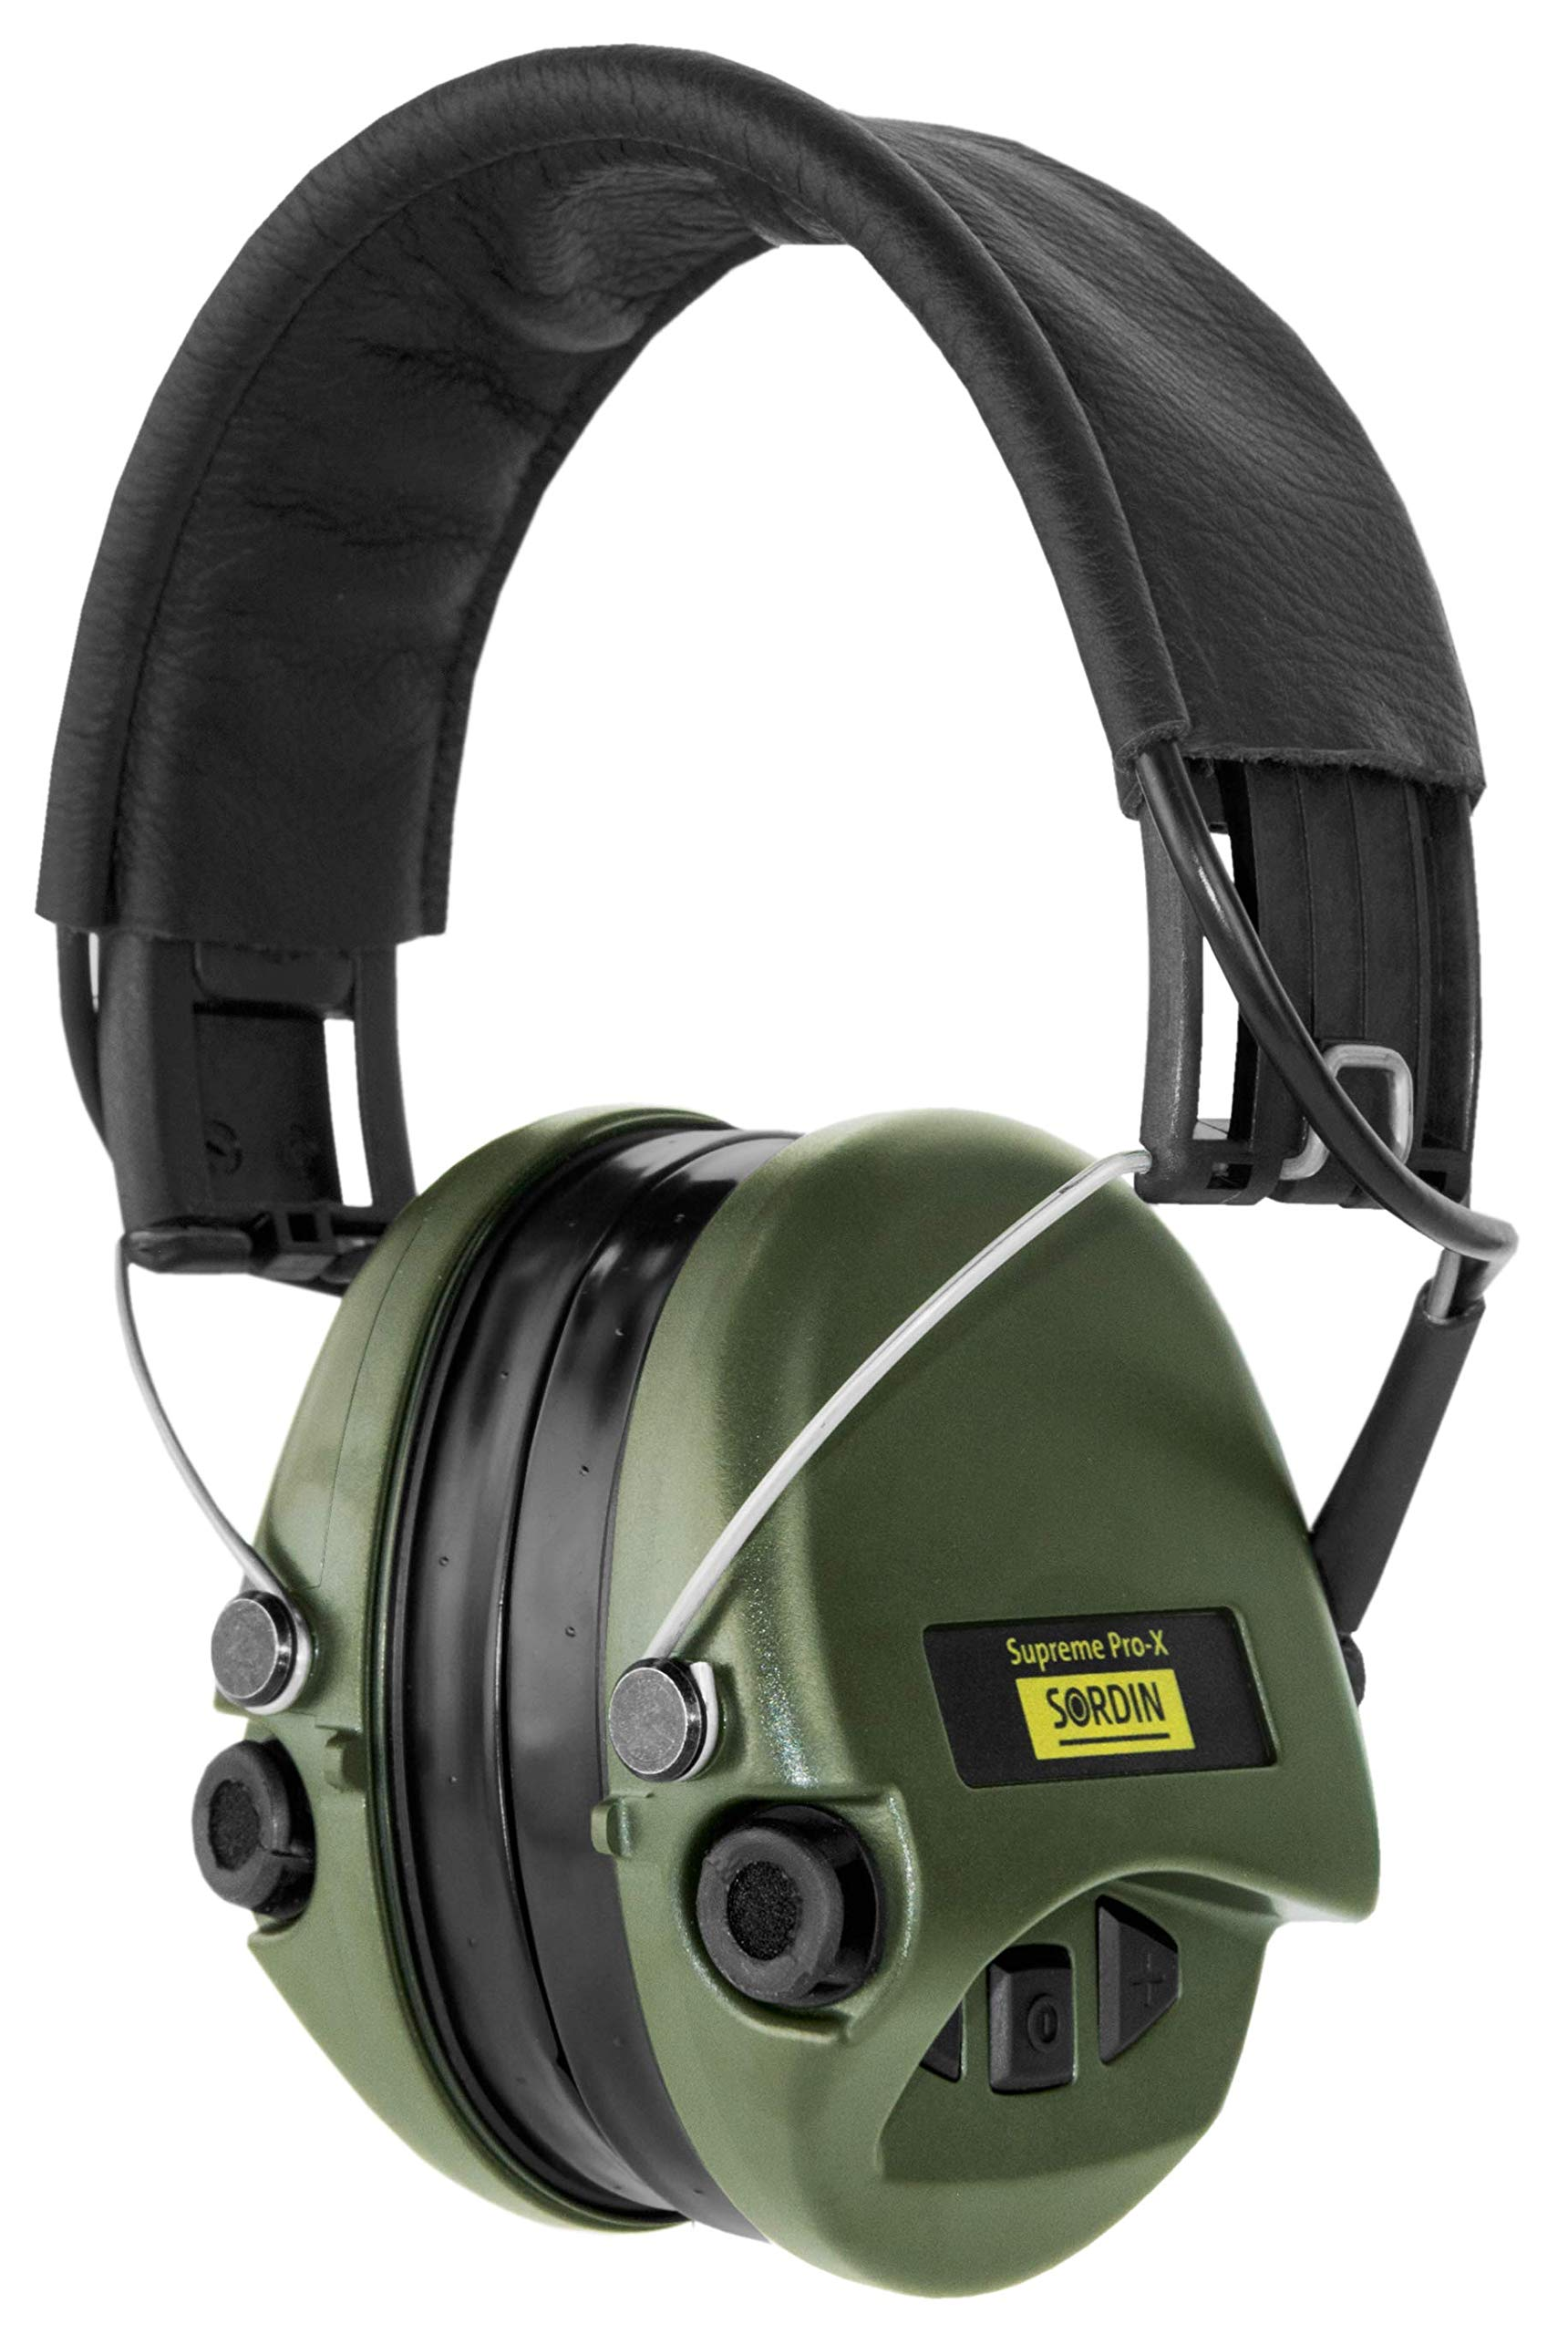 Sordin Supreme PRO X, Noise Reduction Active Safety Ear Muffs, Adjustable Hearing Protection for Shooting, Hunting, Work, Gel Seals, Leather Headband, Green Cups